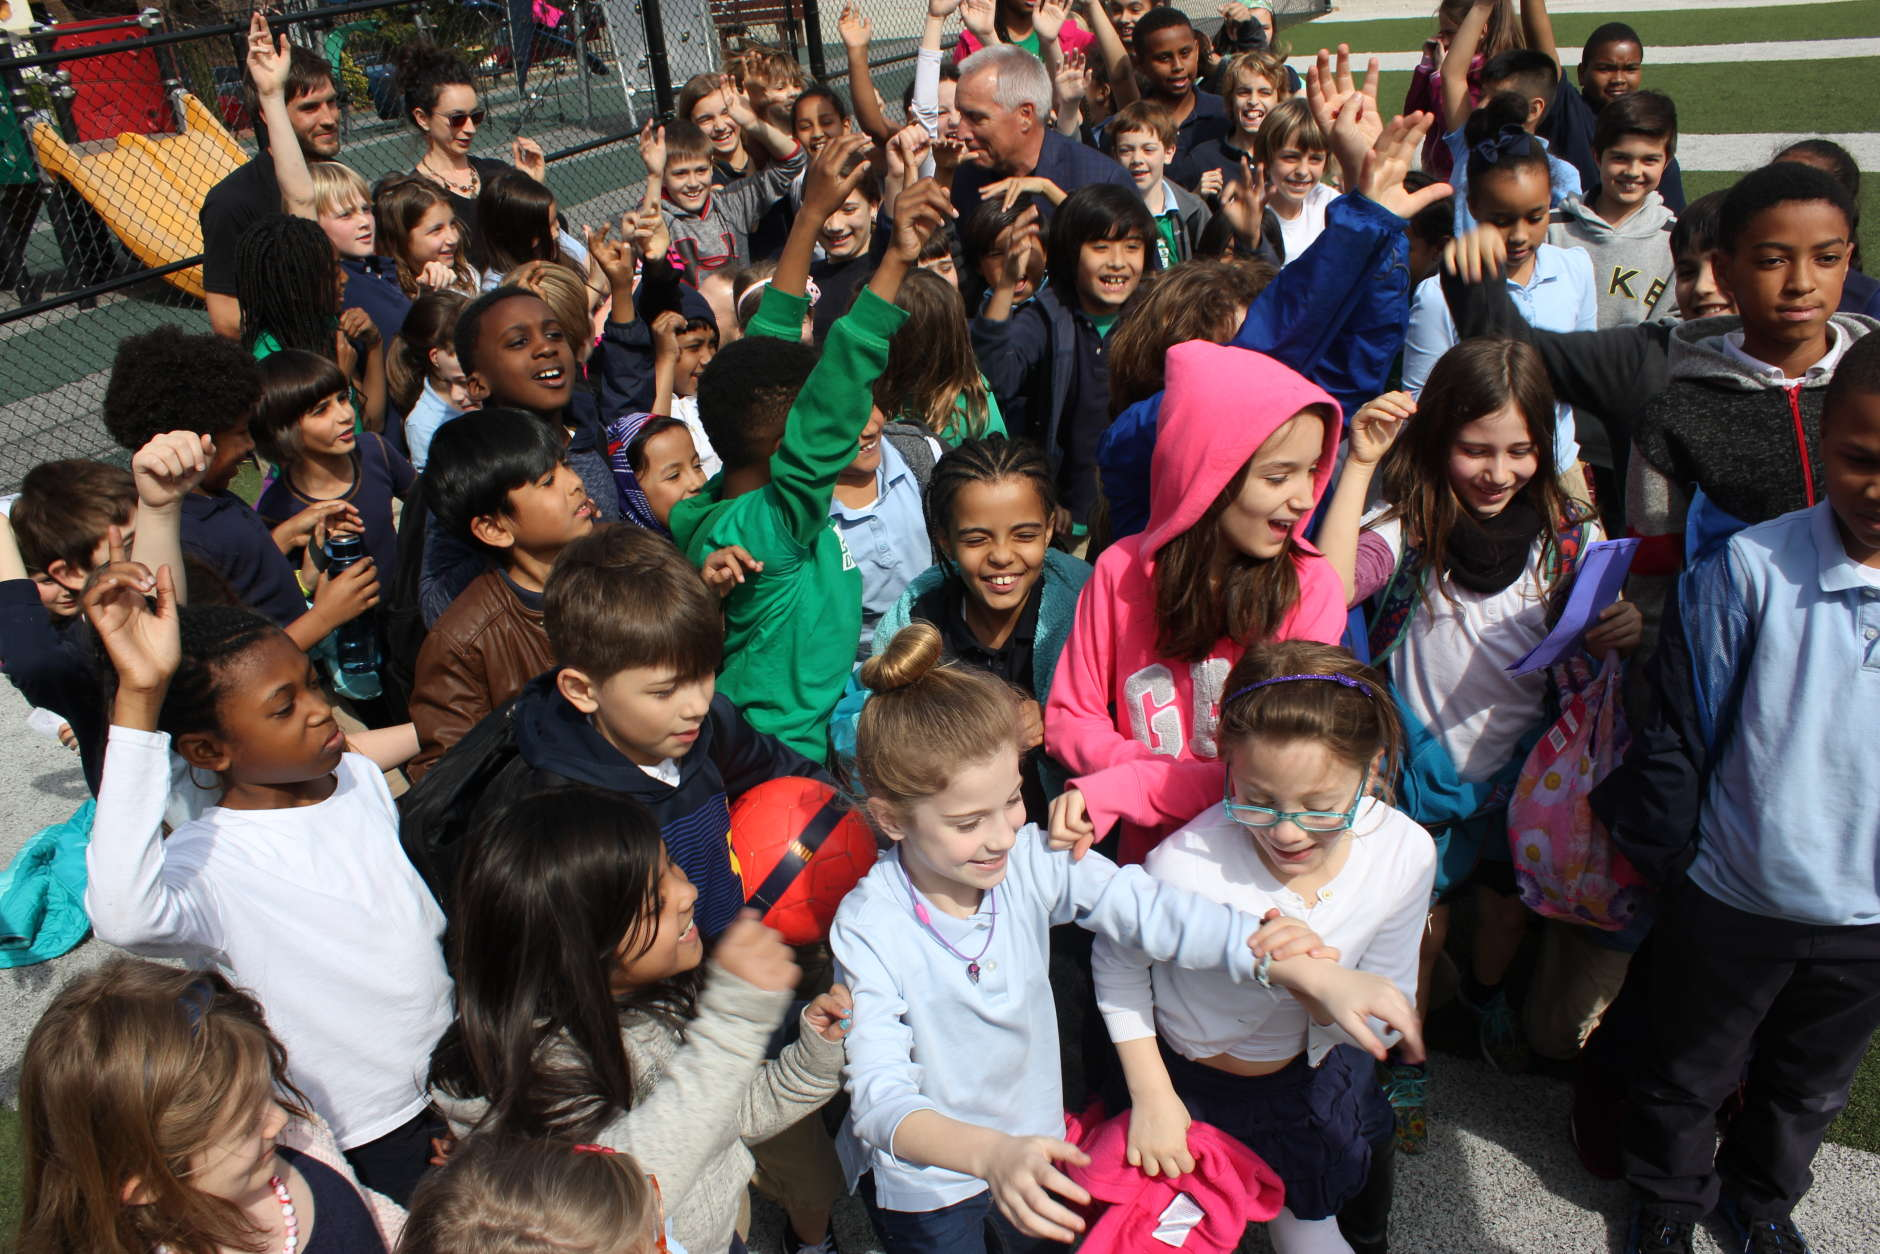 Students from Ross Elementary School in Northwest, D.C. at the ceremony where the school received a PHIT America GO! Grant. (Courtesy of Shari Gordon)